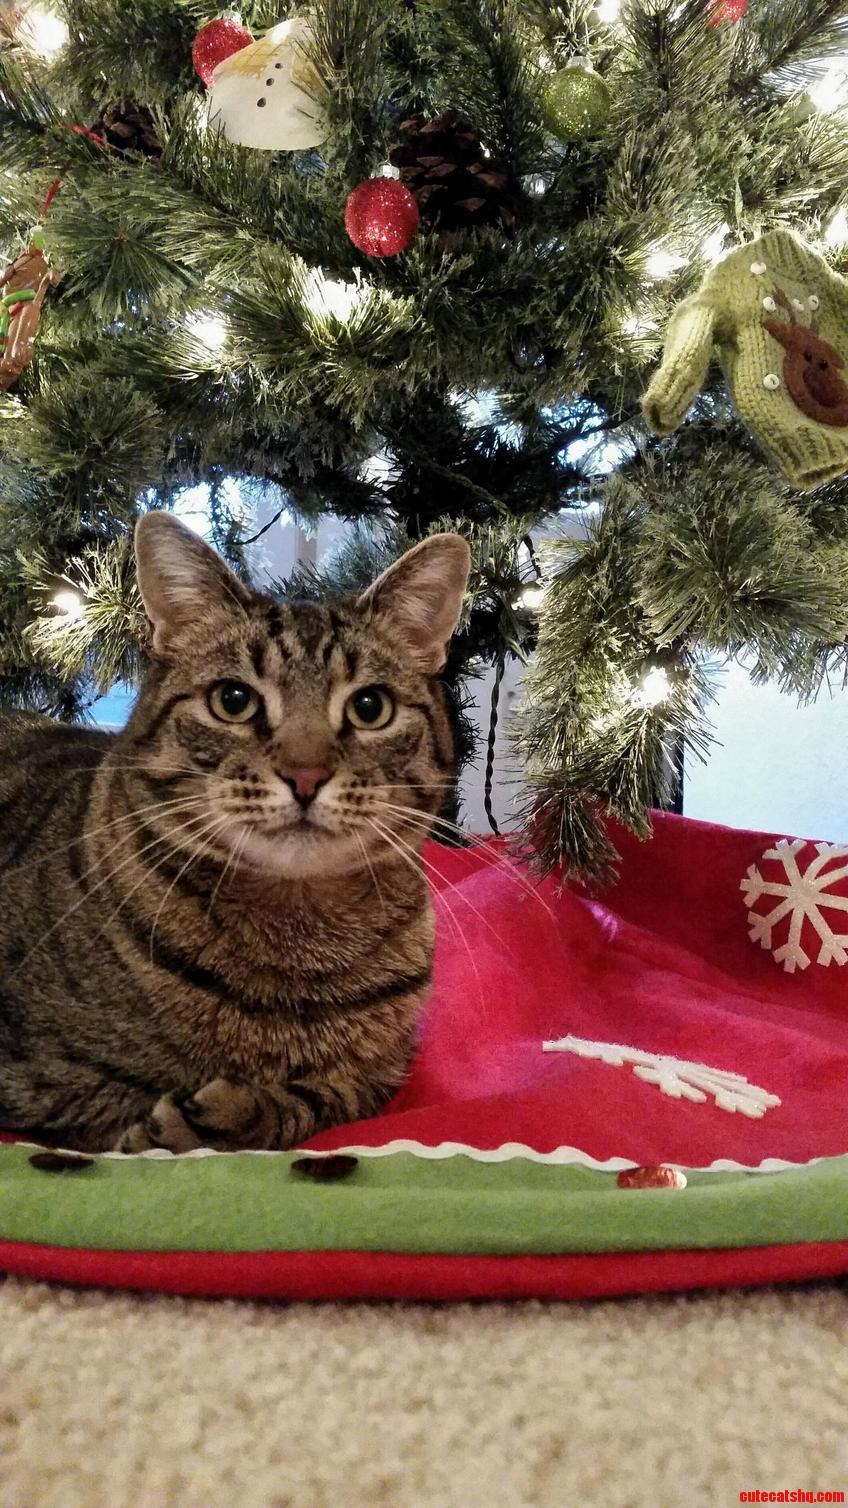 Dorito has really enjoyed sitting under the christmas tree and playing with the ornaments.